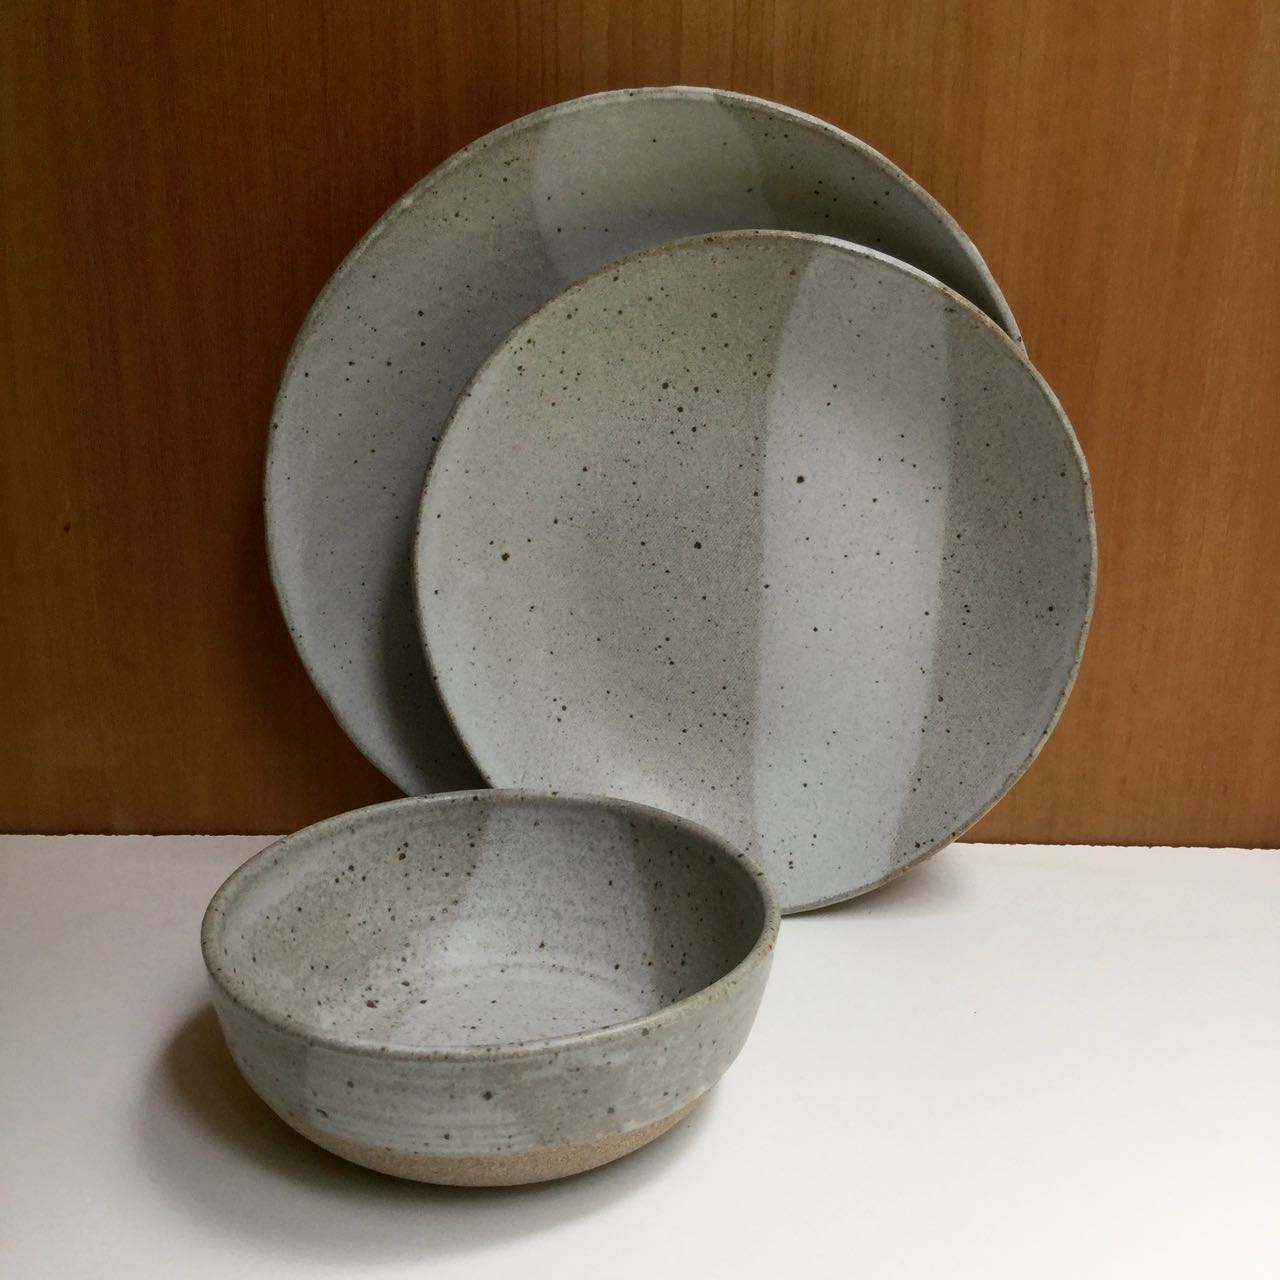 Place setting_Plates and bowl.jpg